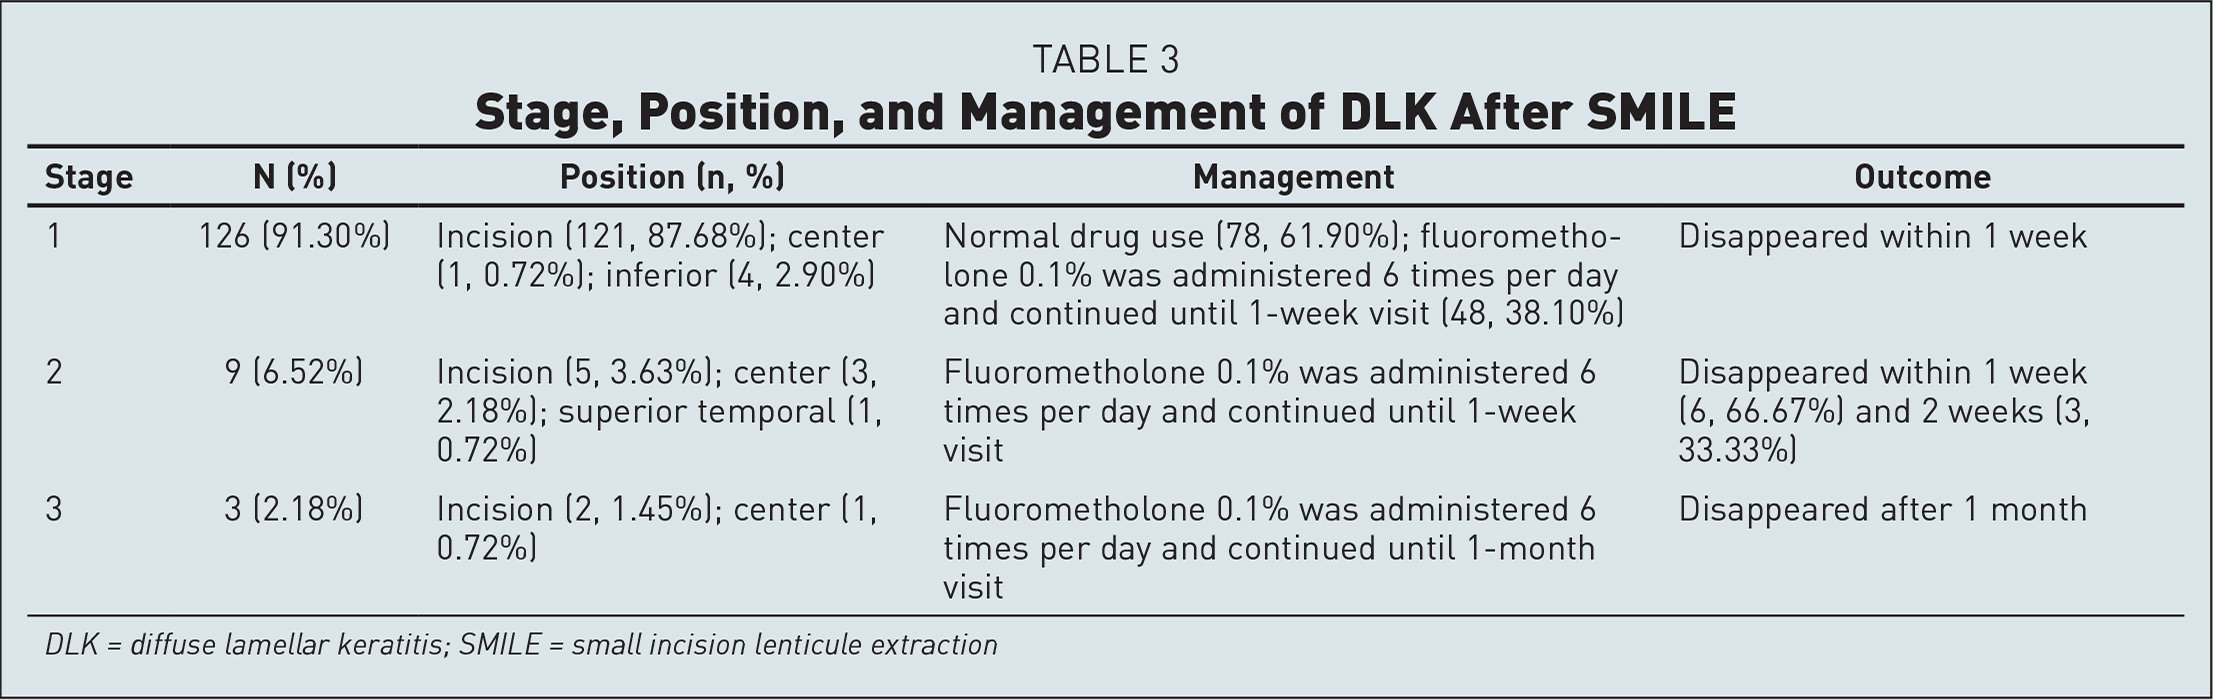 Stage, Position, and Management of DLK After SMILE